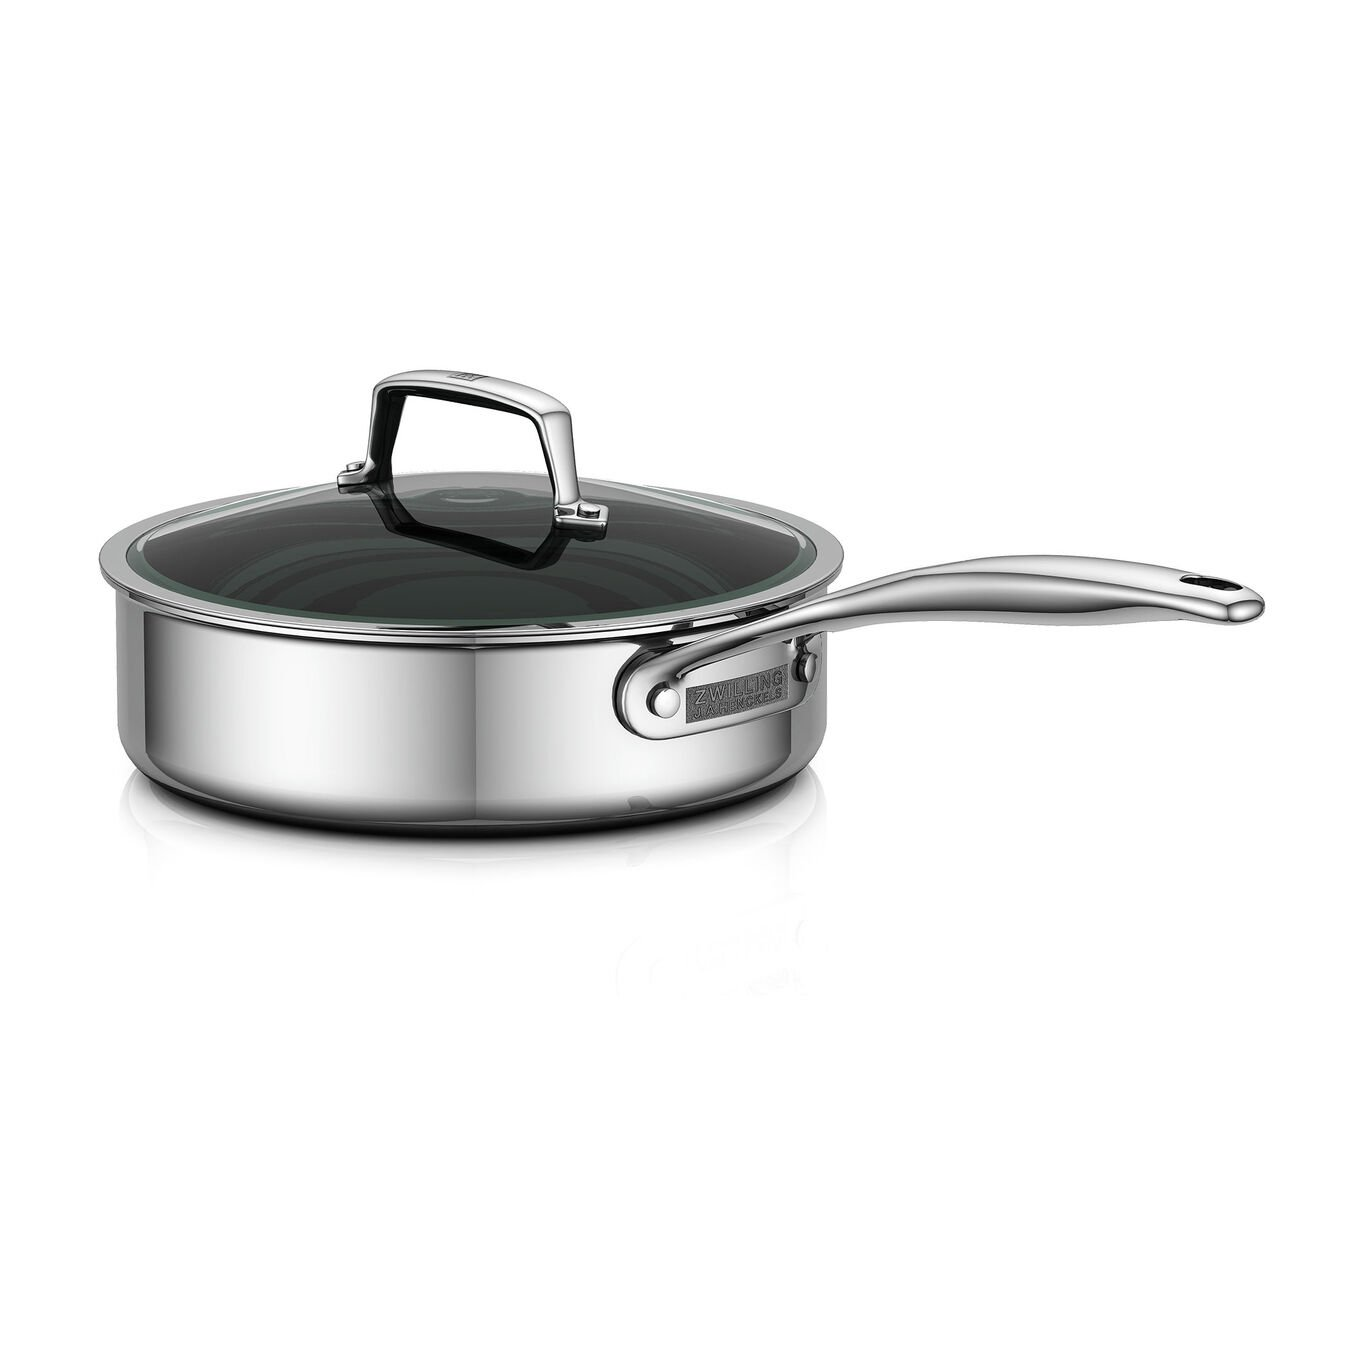 3-Ply 3-qt Stainless Steel Saute Pan w/Lid,,large 1